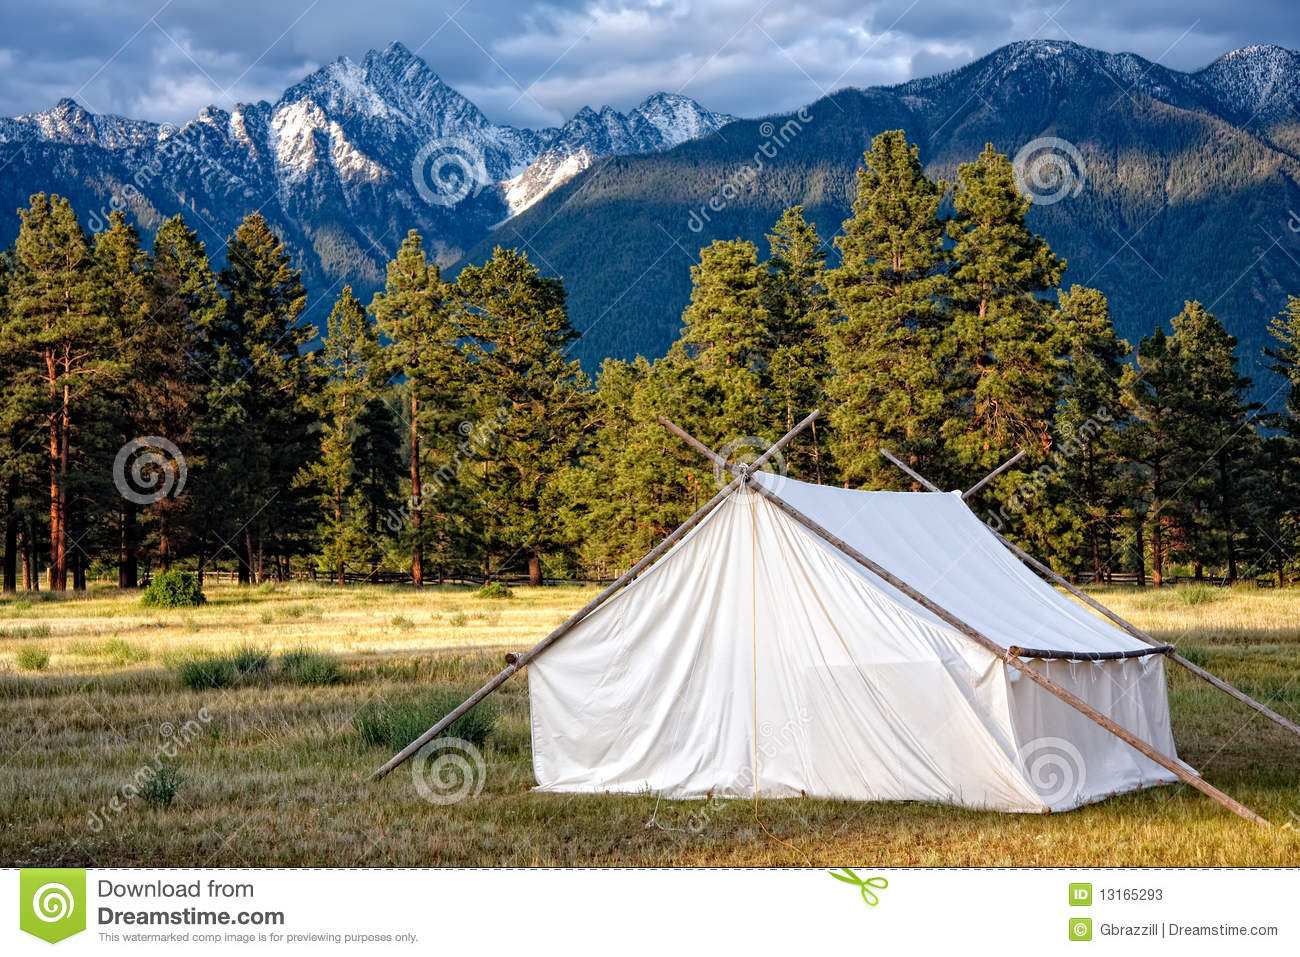 Prospectors Tent And Mountain View Stock Image - Image of